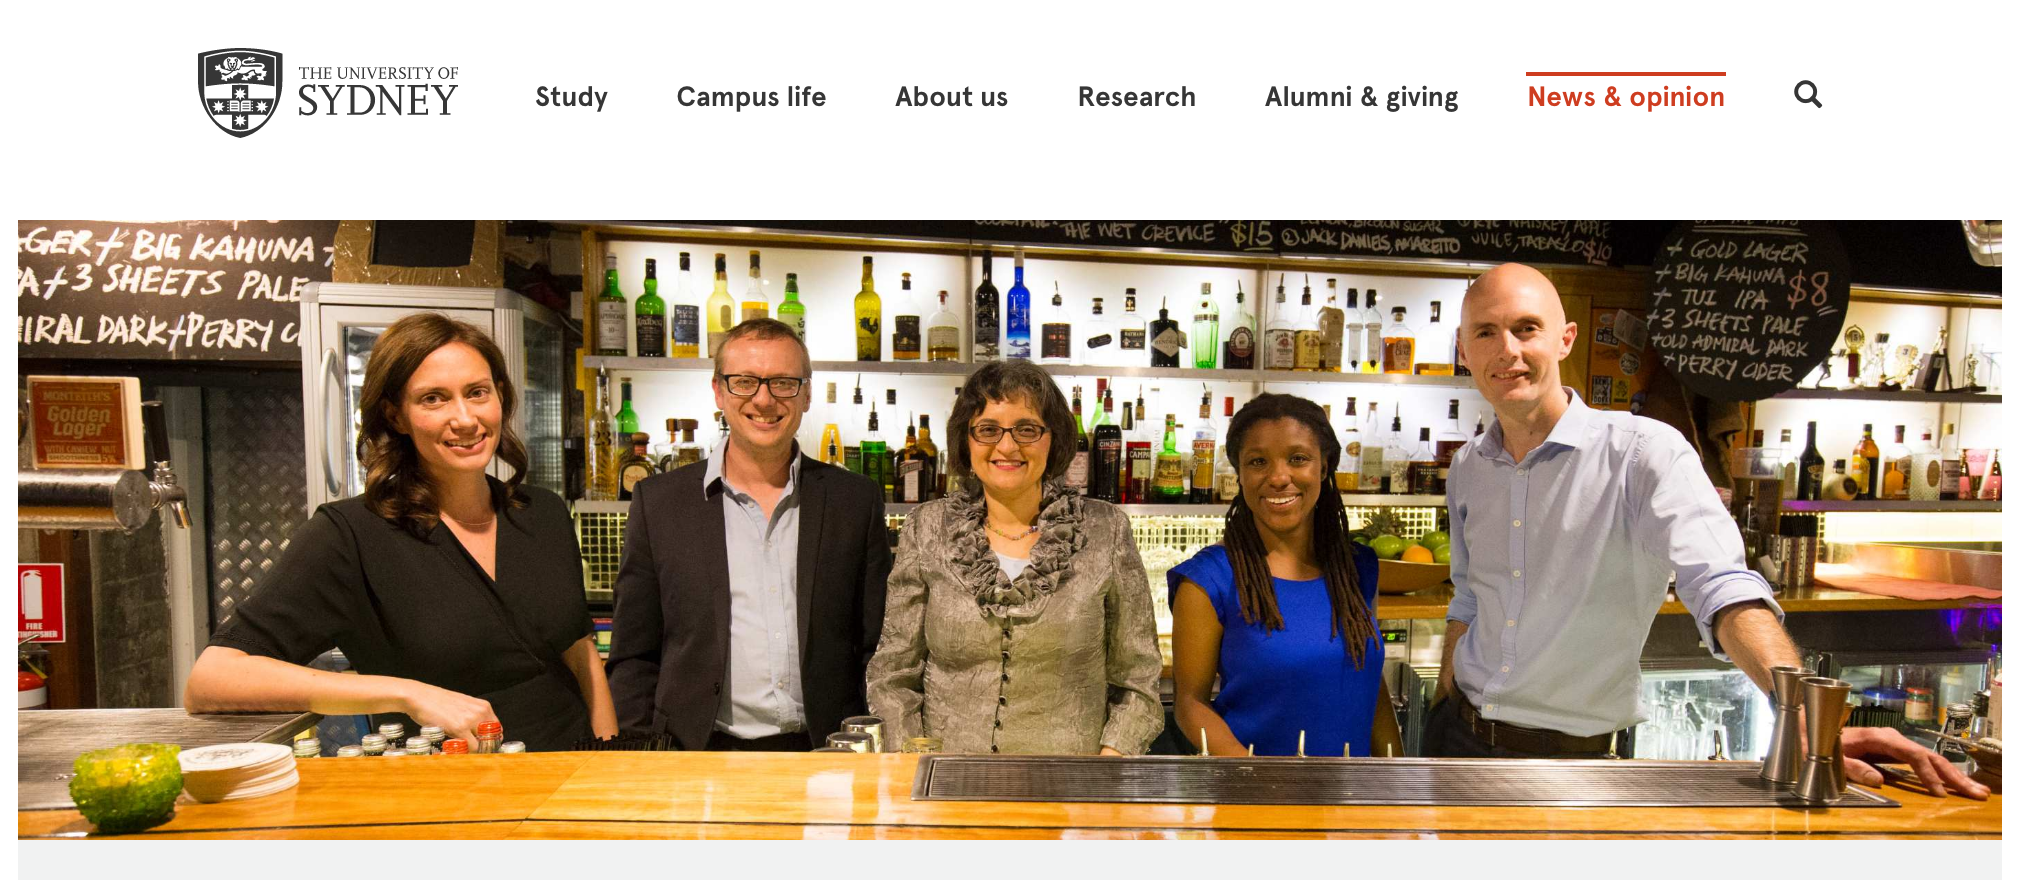 On 20 October, Sydney's watering holes will be transformed into classrooms for one night as 20 academics enter 20 bars to deliver 20 thought-provoking talks.  The University of Sydney has joined  Raising the Bar to bring the popular worldwide initiative, which has previously run in New York, Hong Kong and London, to Sydneysiders.  Established in 2014, Raising the Bar began with a group of students from Columbia University and New York University who were looking to share the unique learning experience from the world's greatest minds with the general public.The first ever Raising the Bar Sydney event aims to change the city's popular culture to make education a key element.  Read more.